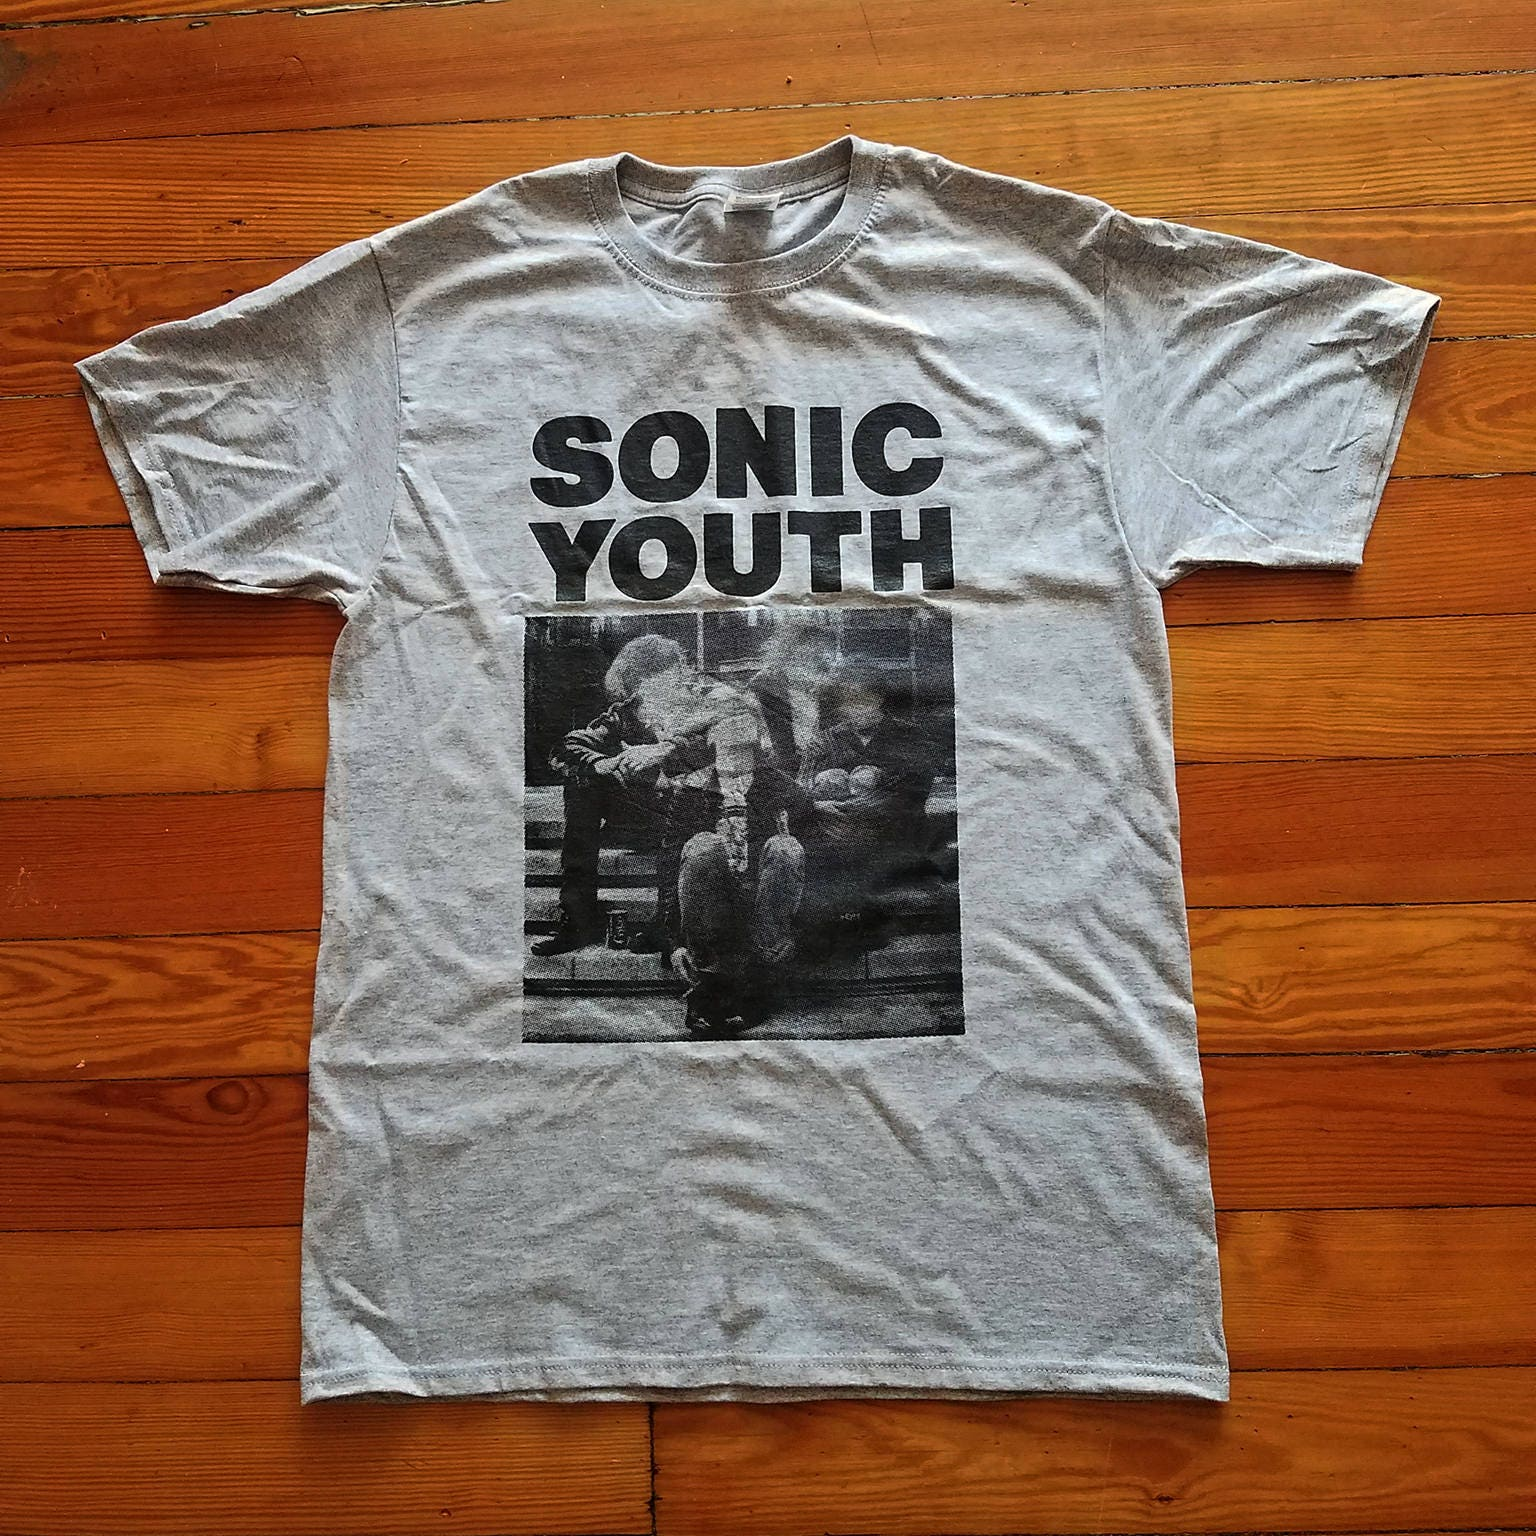 830cac46 Sonic Youth Band Shirts - DREAMWORKS